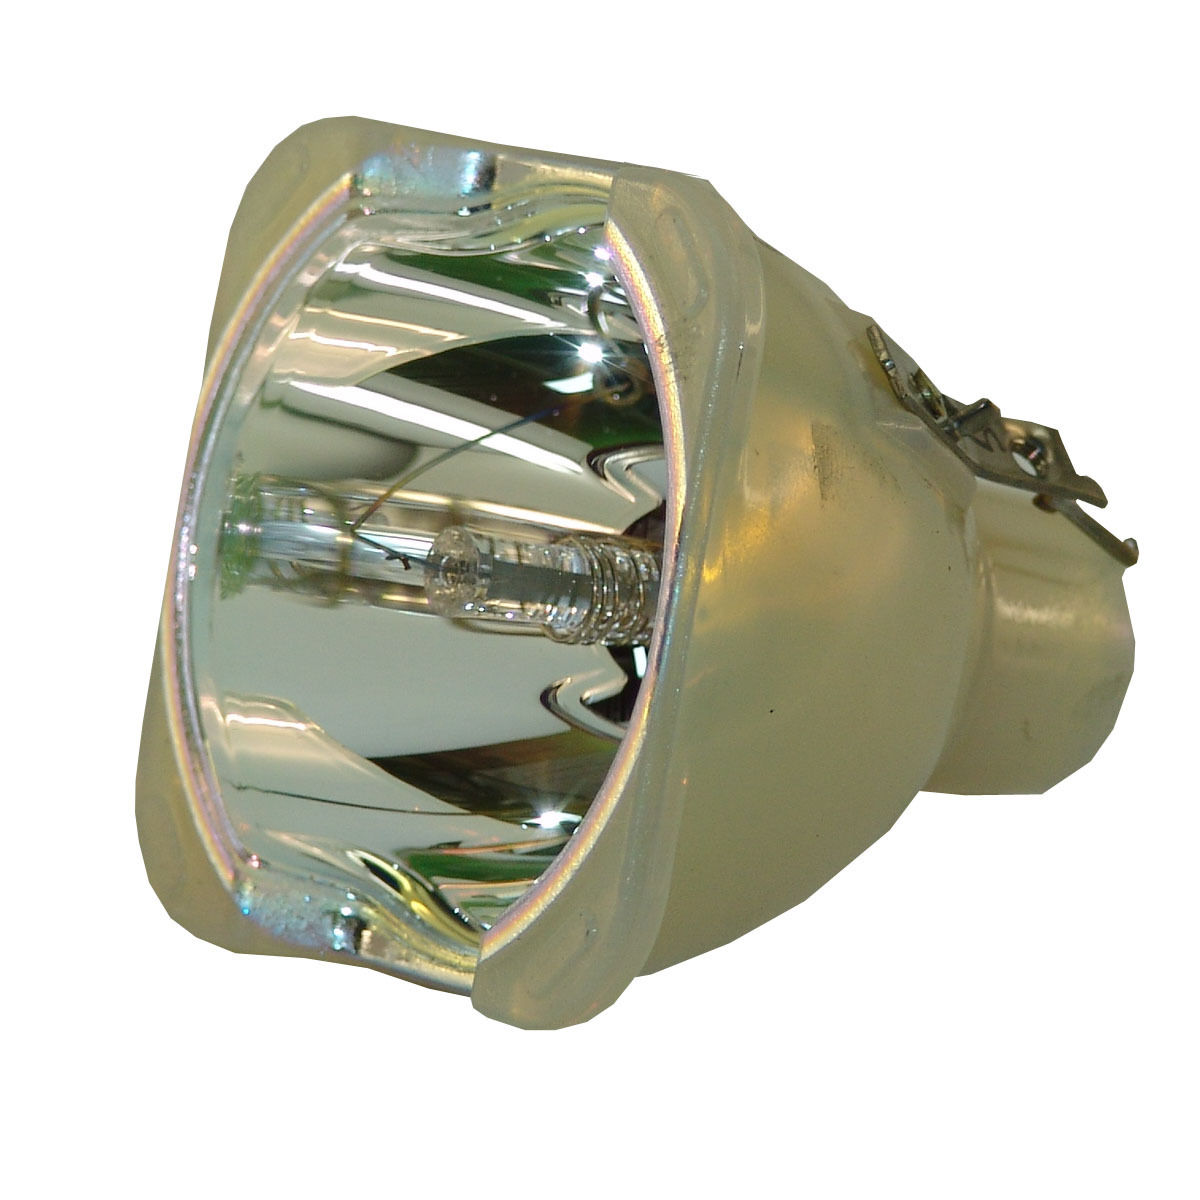 Compatible Bare Bulb TLPLW23 TLP-LW23 for TOSHIBA TDP-T360 TDP-T420 TDP-TW420 Projector lamp bulb without housing compatible bare bulb tlplx10 tlp lx10 for toshiba tlp mt7 tlp x20 tlp x21 tlp x21de tlp x20de tlp x11 projector lamp bulb